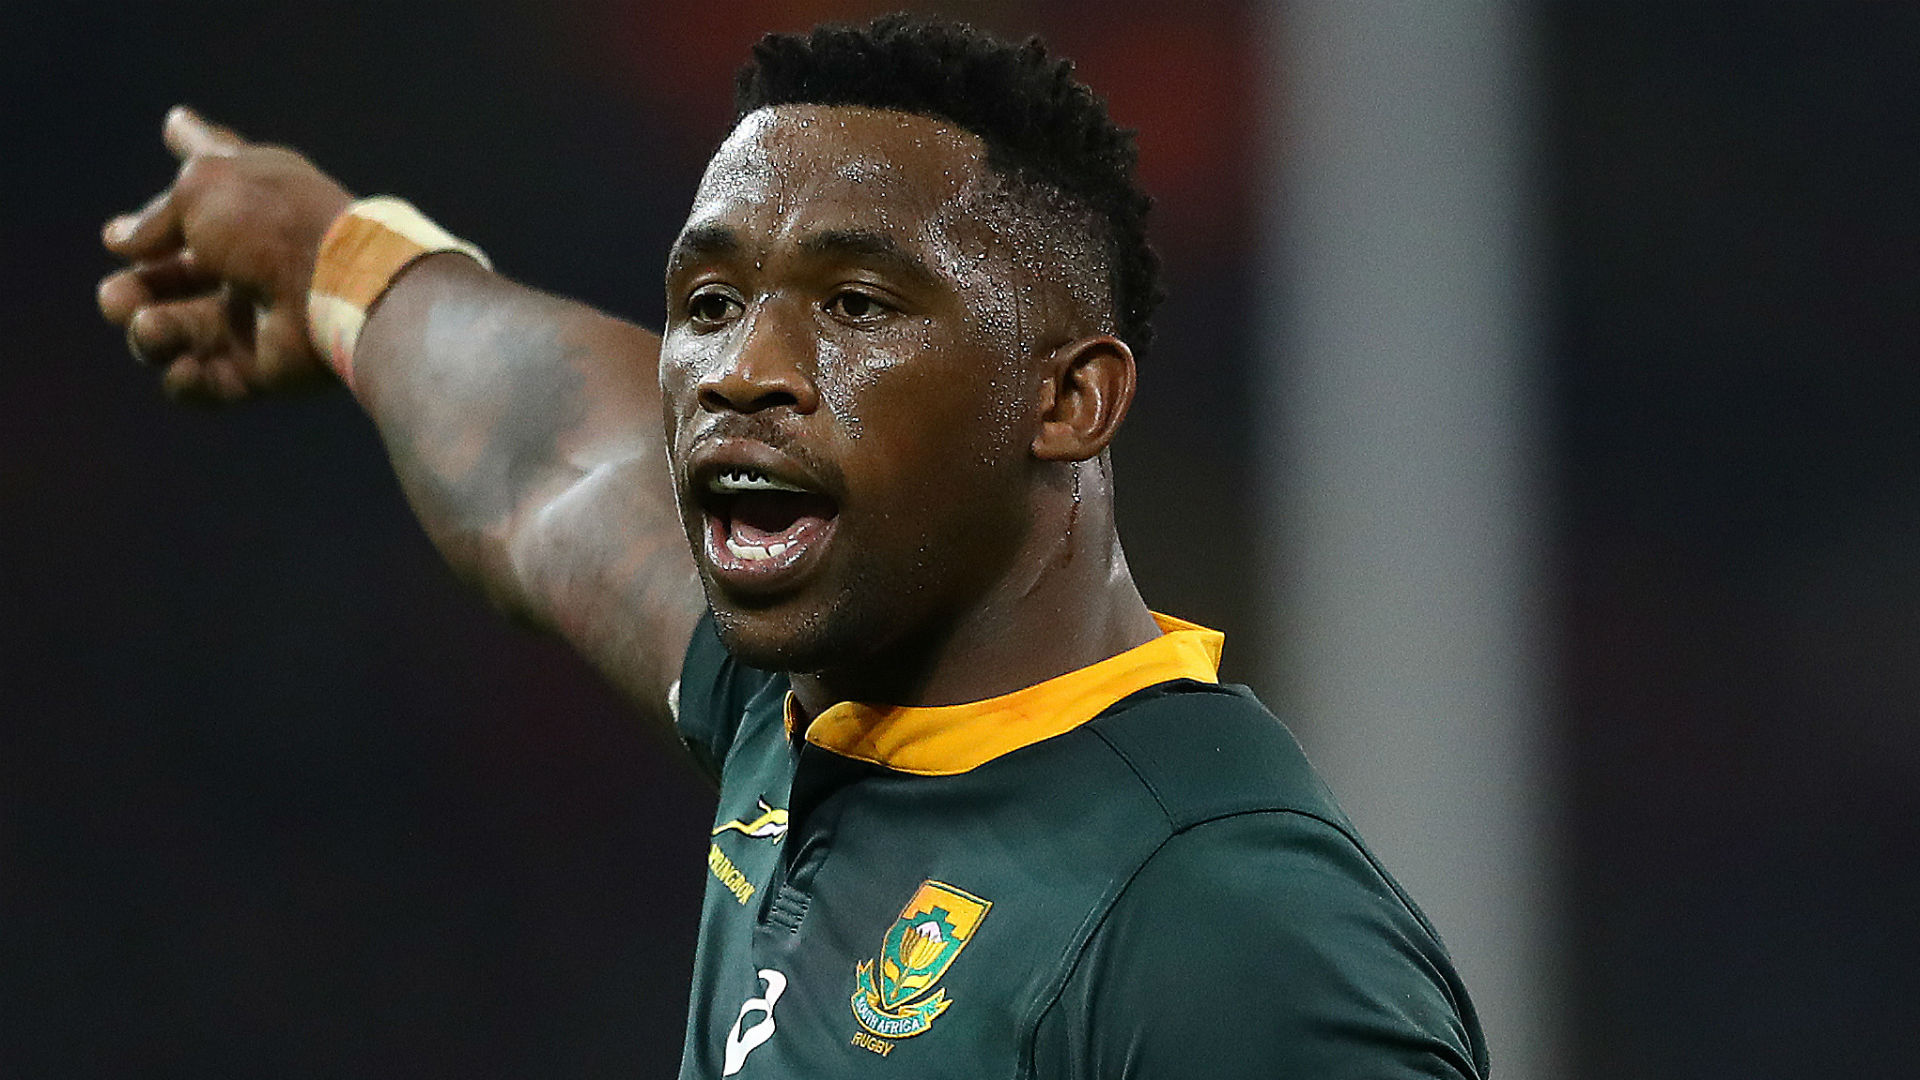 South Africa is on a strict lockdown due to coronavirus and Siya Kolisi is doing his part to help fight the crisis.